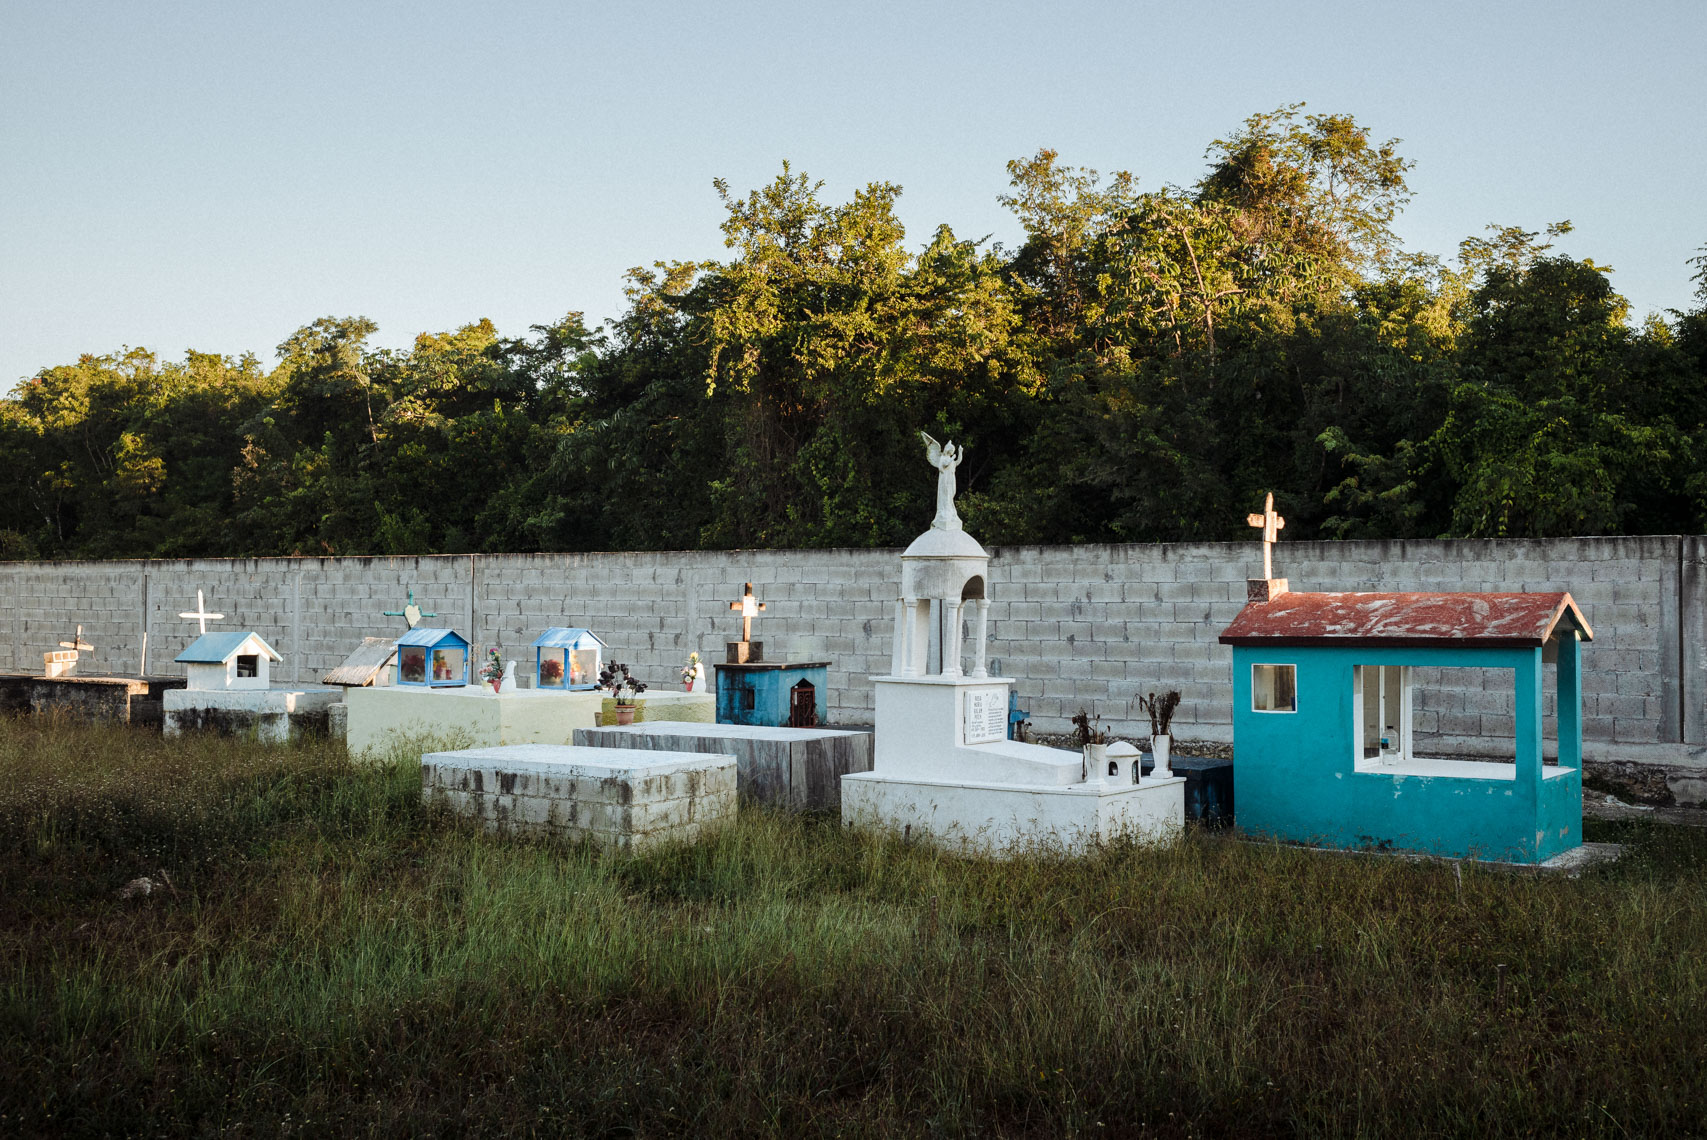 richard-schabetsberger-cemetries-of-mexico-002